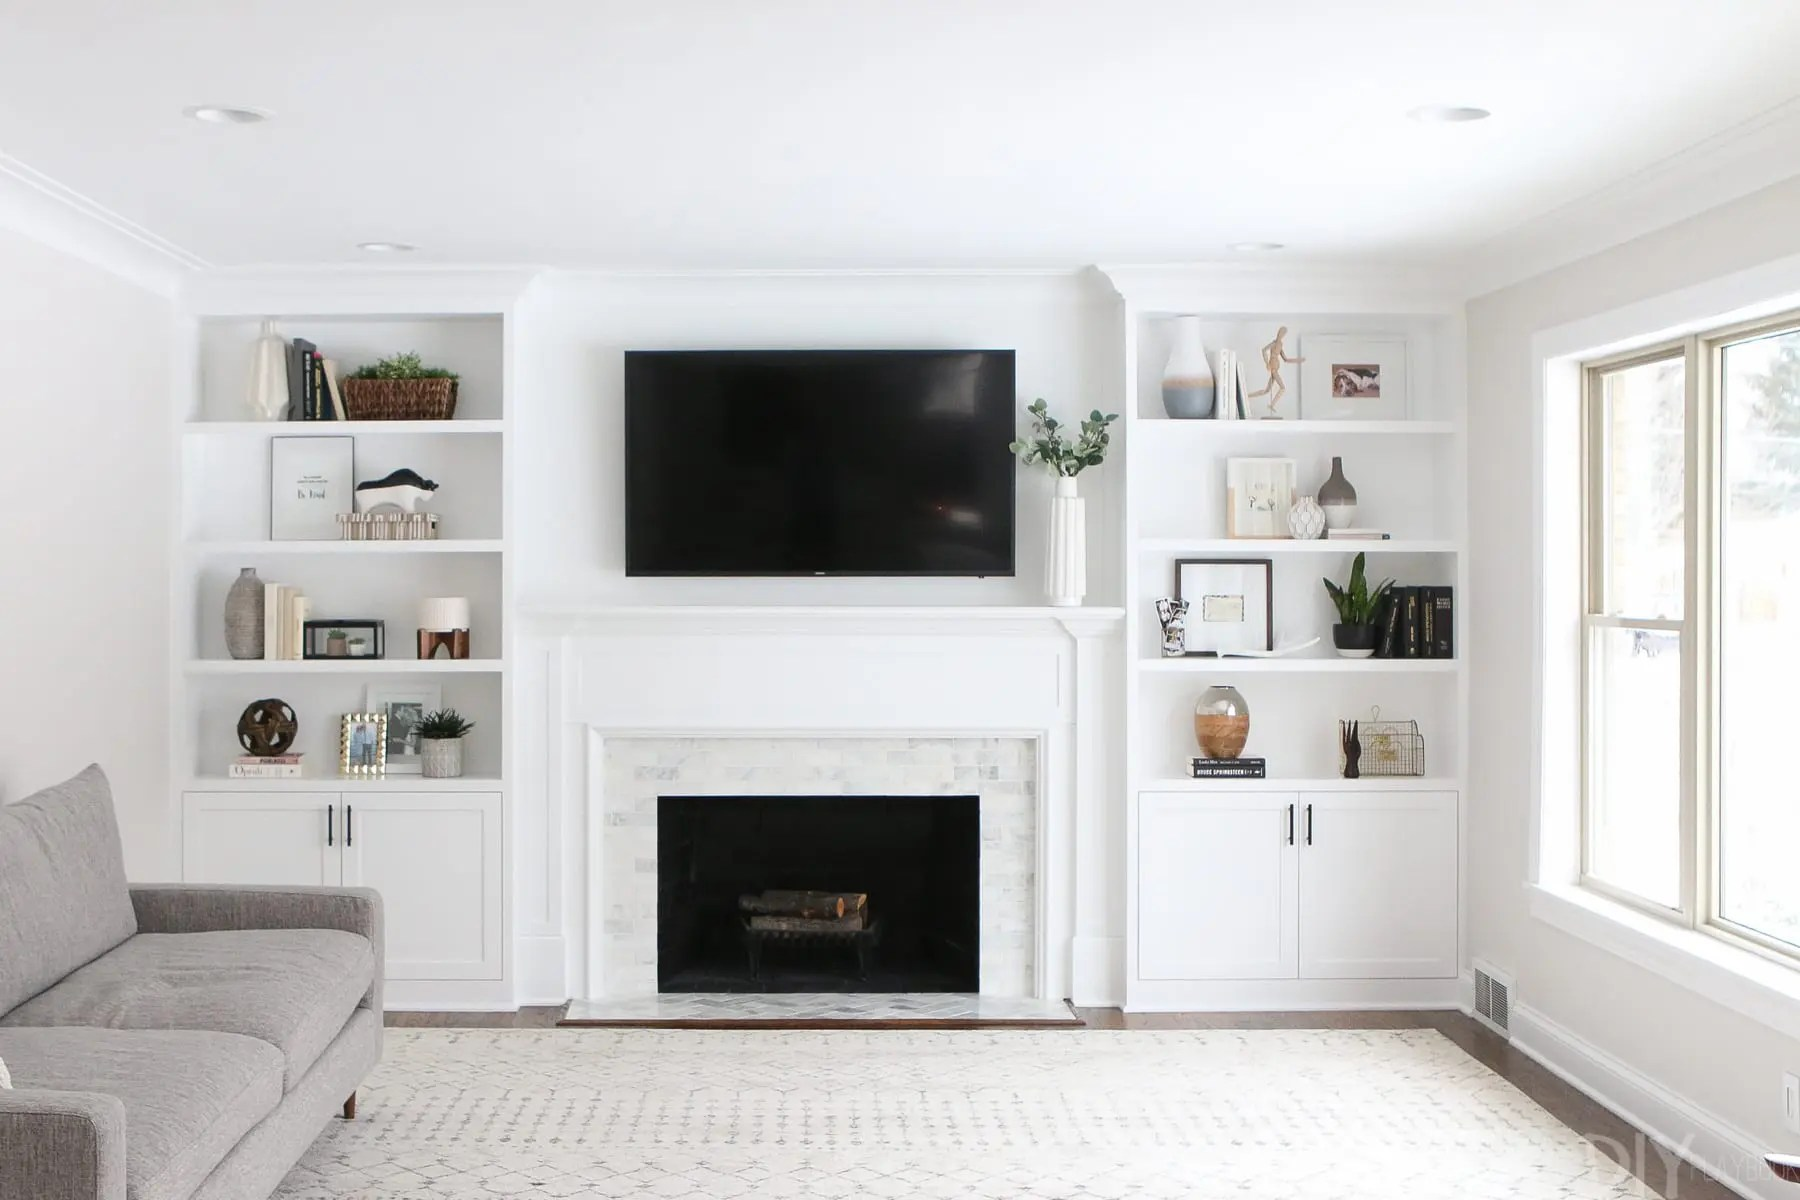 How To Decorate Fireplace The Dos And Don Ts Of Decorating Built In Shelves The Diy Playbook